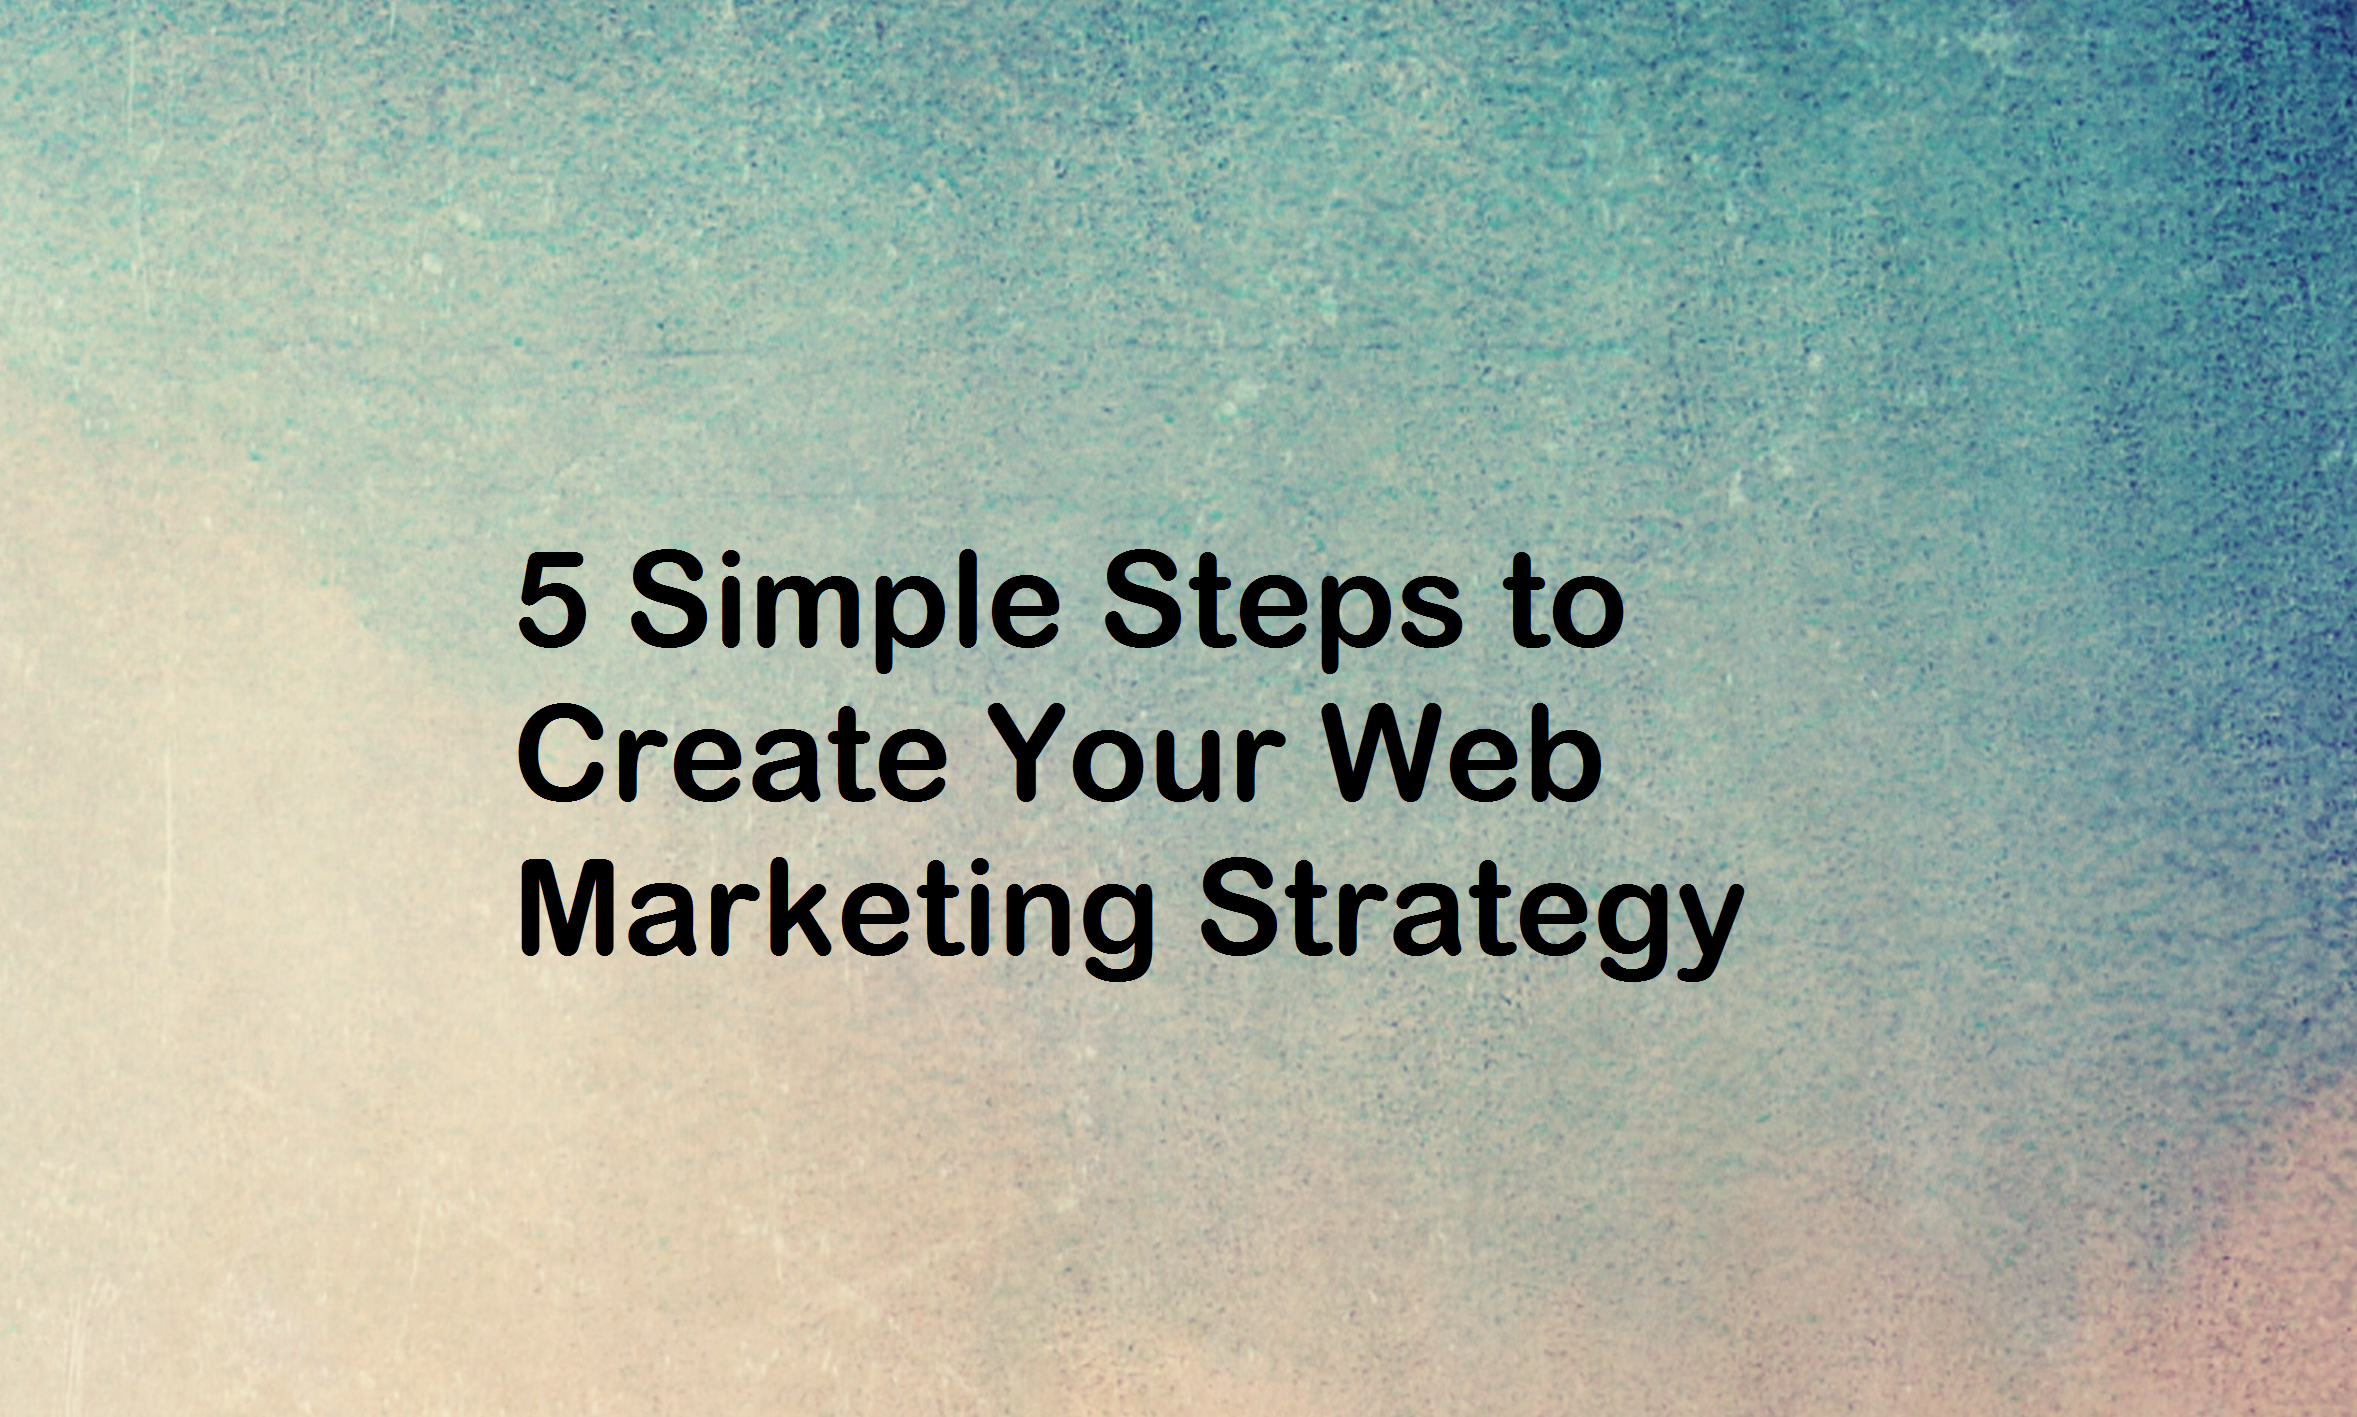 5 Simple Steps to Create Your Web Marketing Strategy